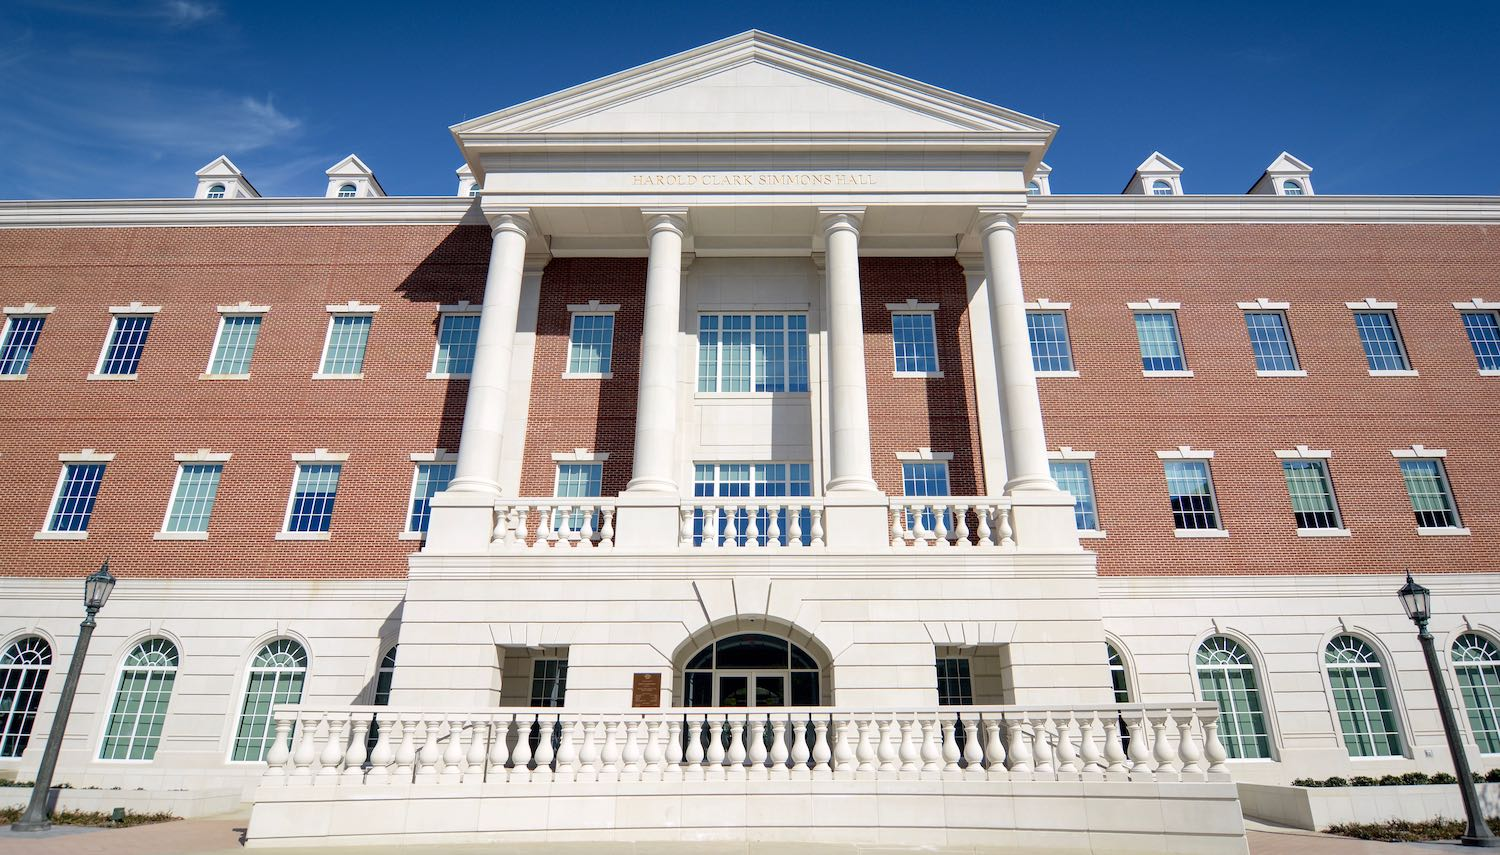 Balustrade System, Columns, Cladding Design for Harold Clark Simmons Hall, SMU